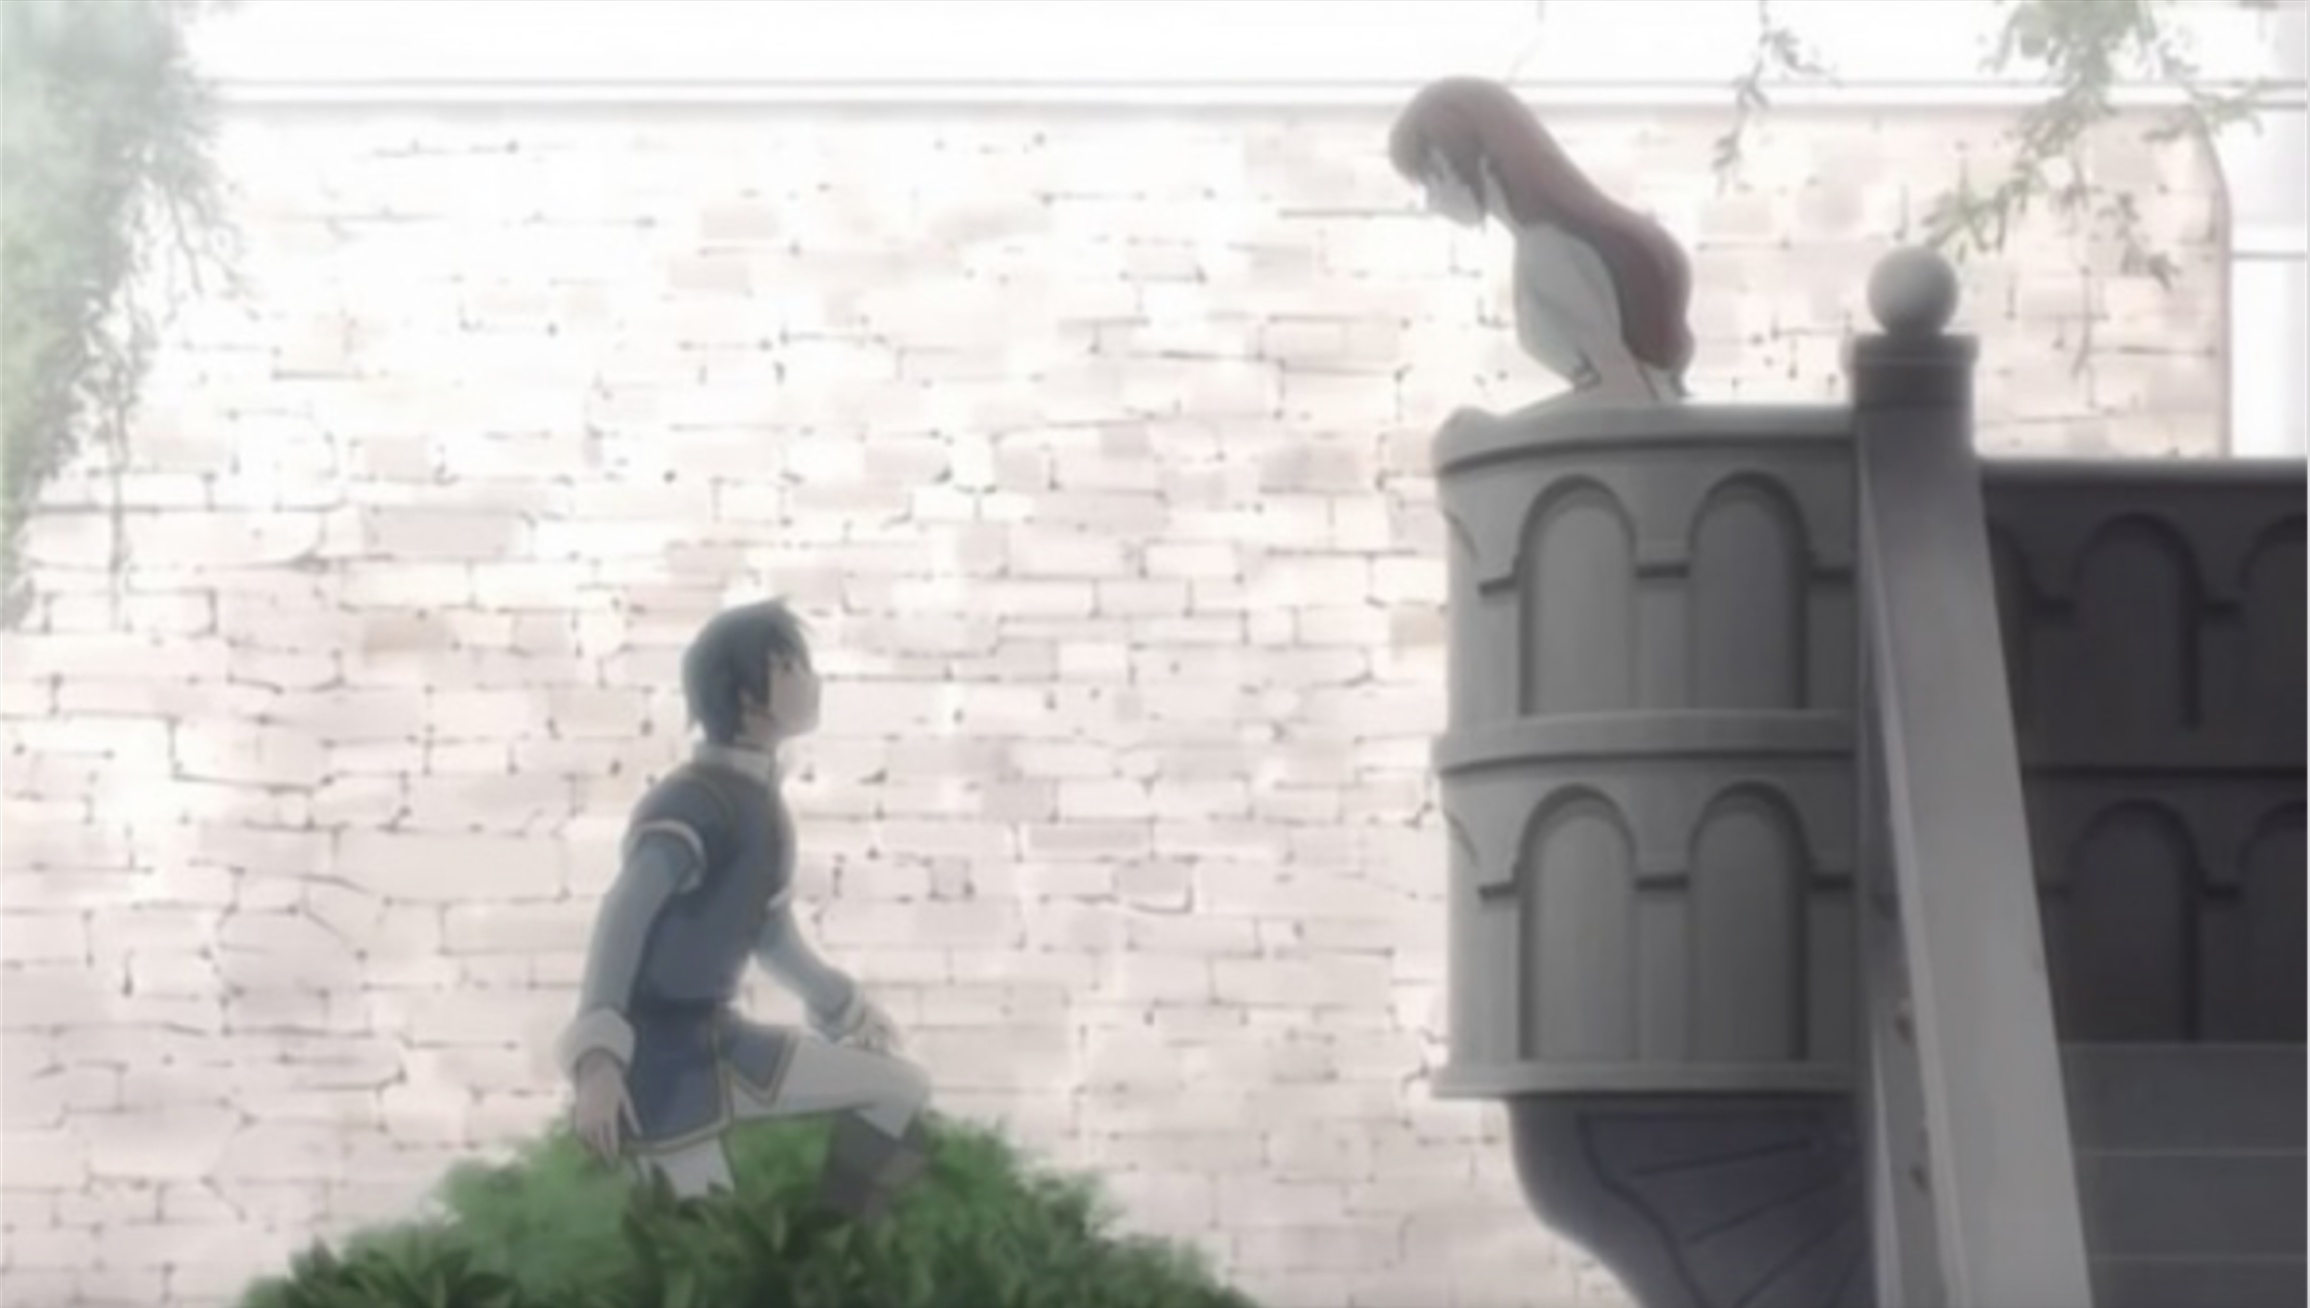 romeo and juliet s r tic balcony scene from romeo x juliet  romeo and juliet s r tic balcony scene from romeo x juliet anime